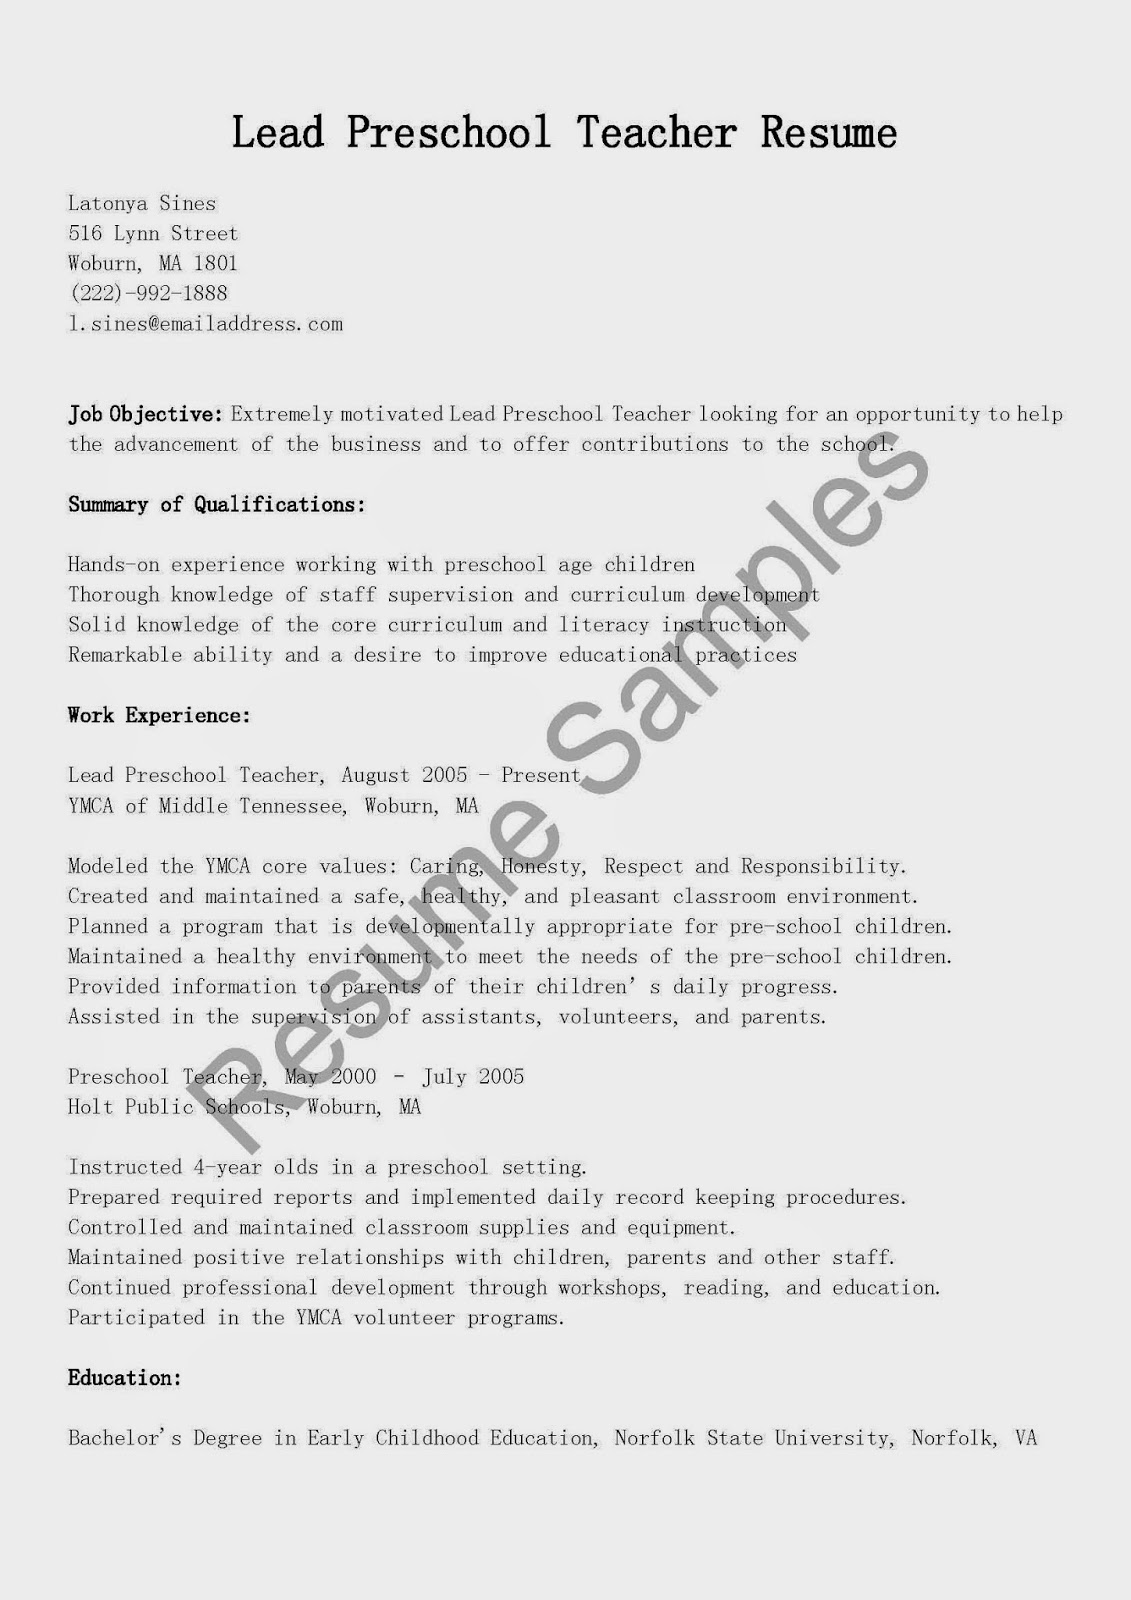 Early Childhood Teacher Resume Samples Australia Apa Format Research Paper In Text Citations Critical